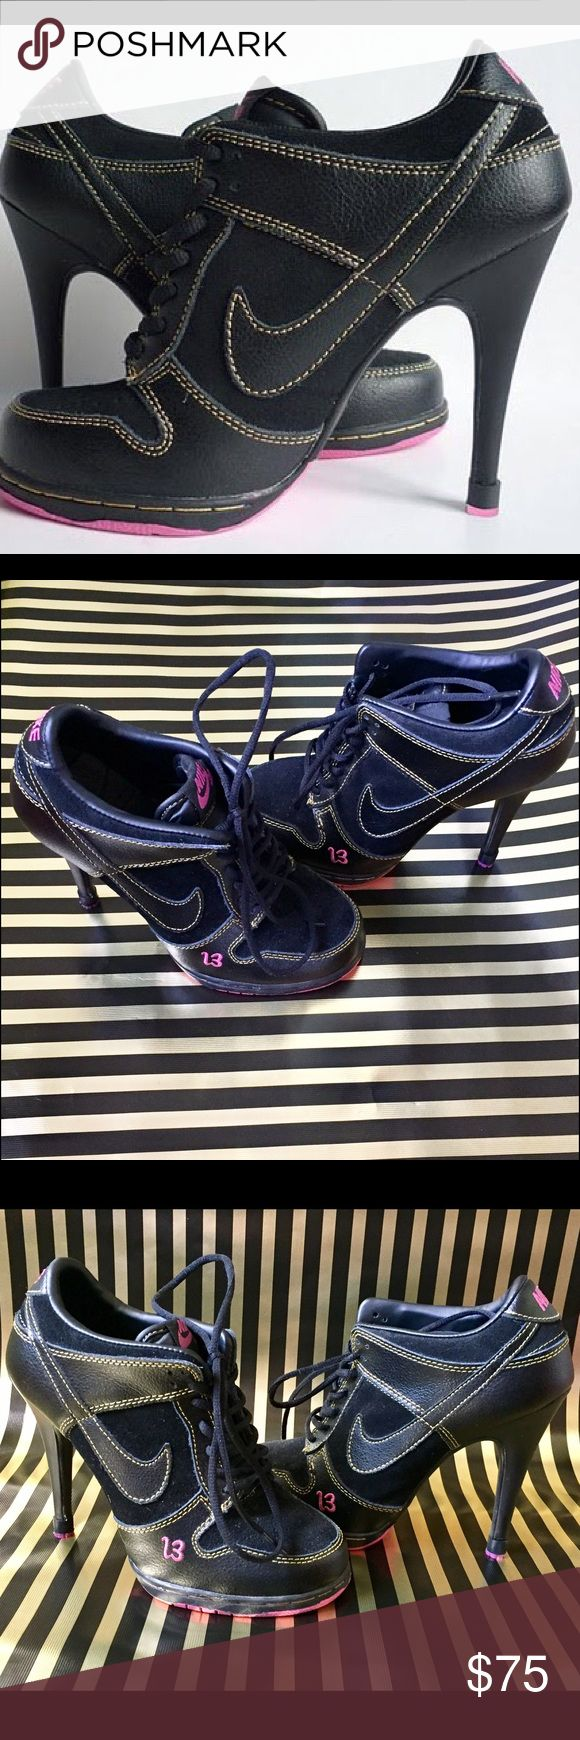 Women's Nike high heels dunk SB low   Black and pink size 5.5 Women's Nike high heels dunk SB low   these are sexy and sporty and sure to turn heads  Nike Shoes